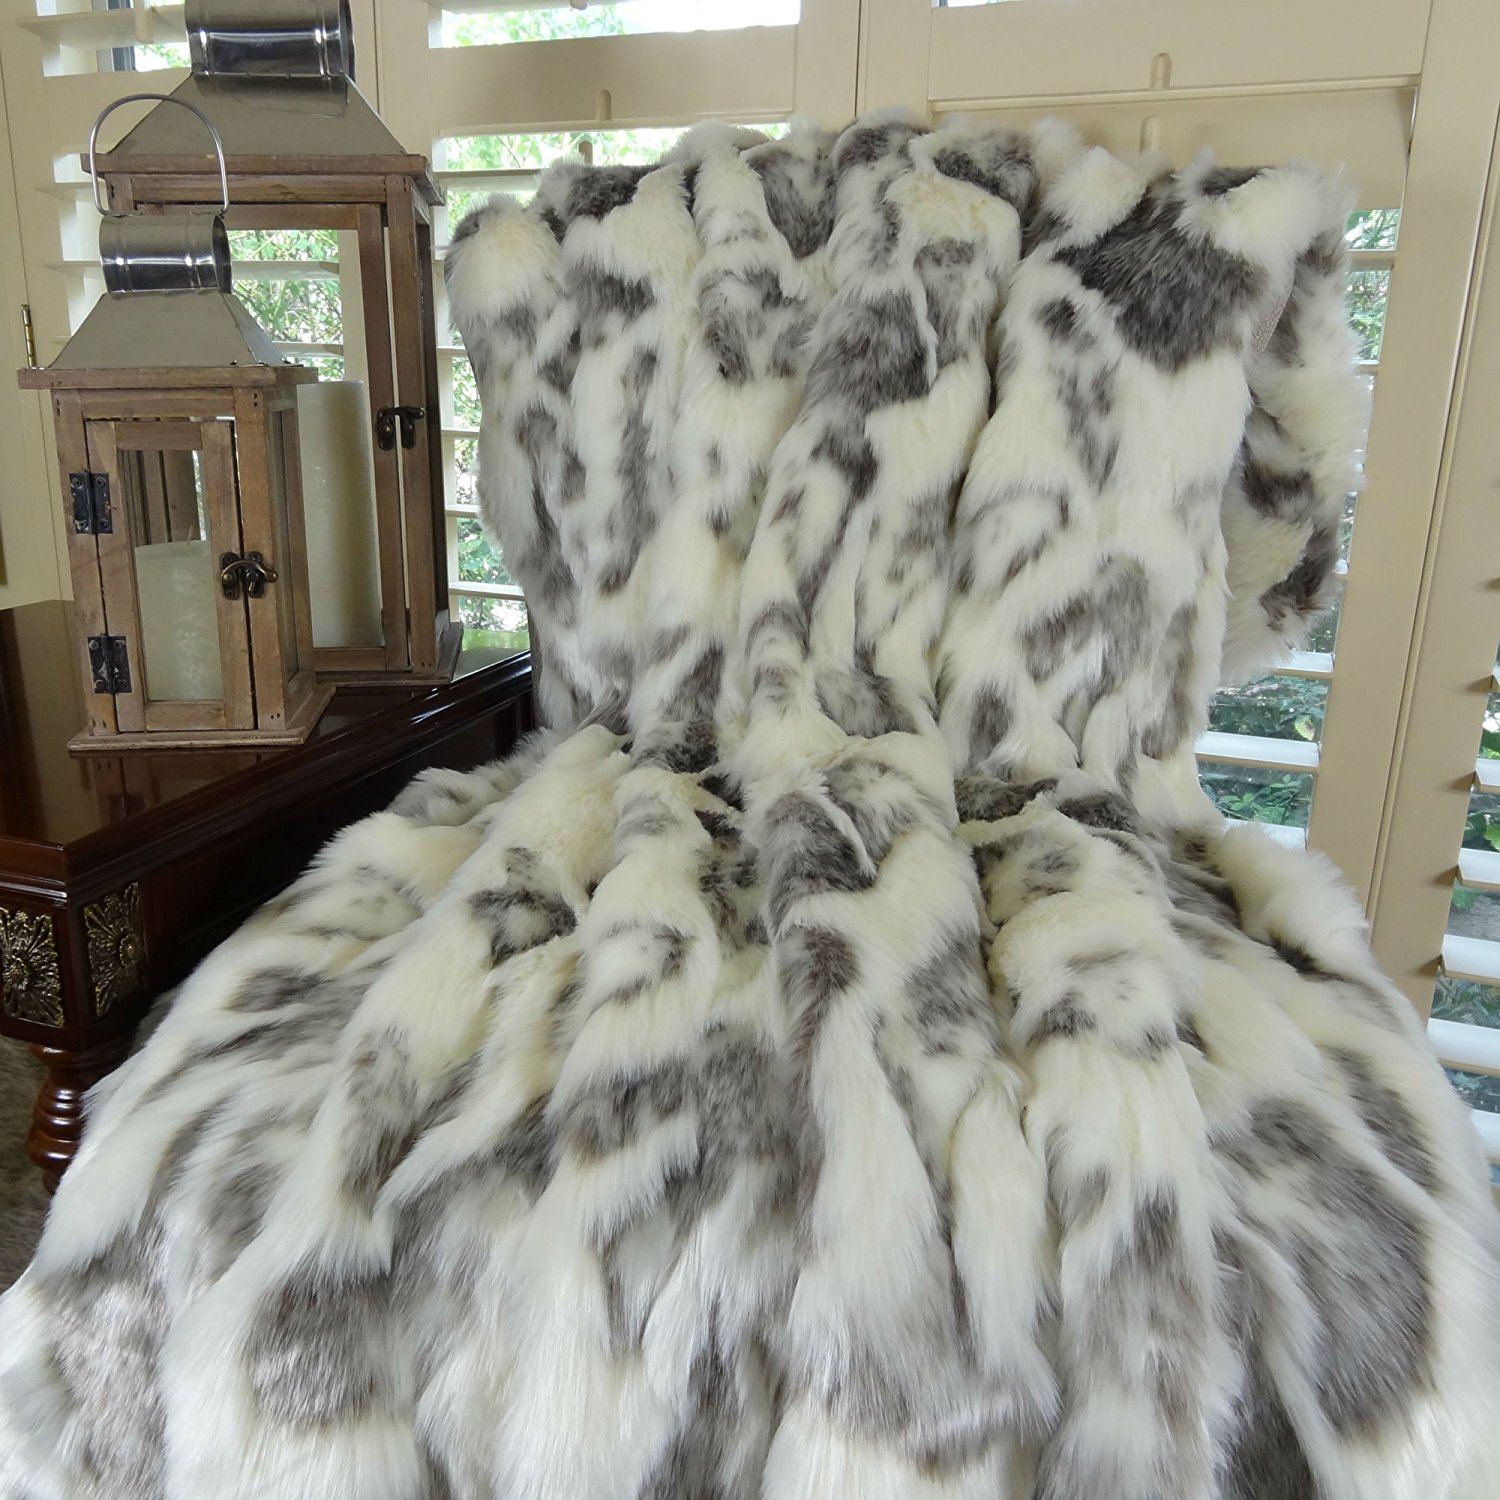 Thomas Collection Ivory Faux Fur Throw Blanket & Bedspread - Rabbit Faux Fur - Ivory Gray Luxury Faux Fur - Fur Throw Blanket - Luxury Soft Faux Fur, Made in US, 16428